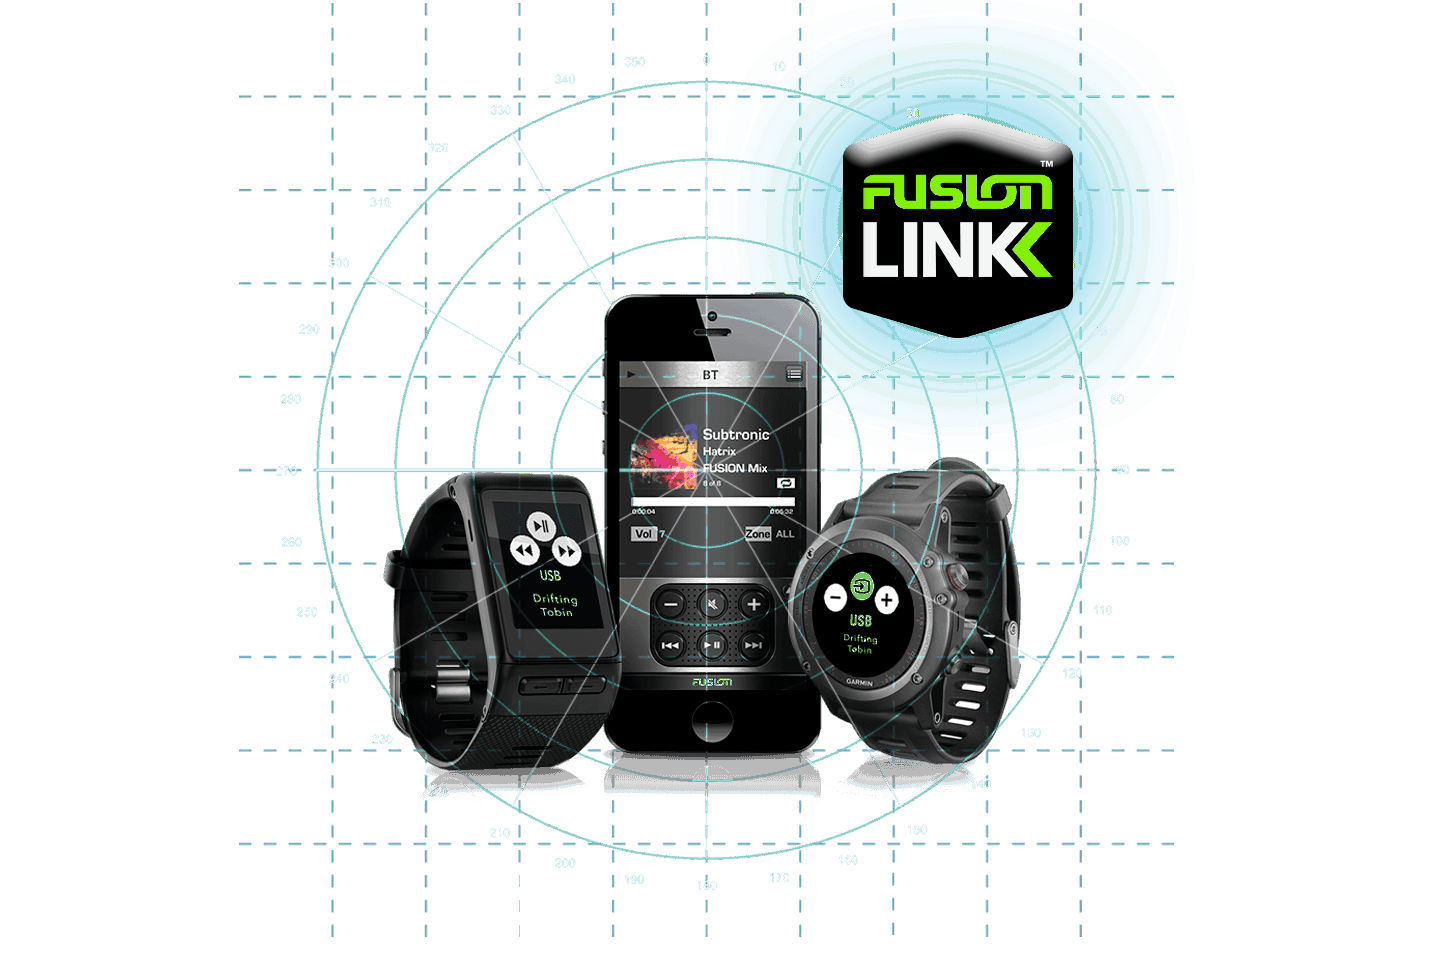 Fusion Link Wireless Phone Watch ANT